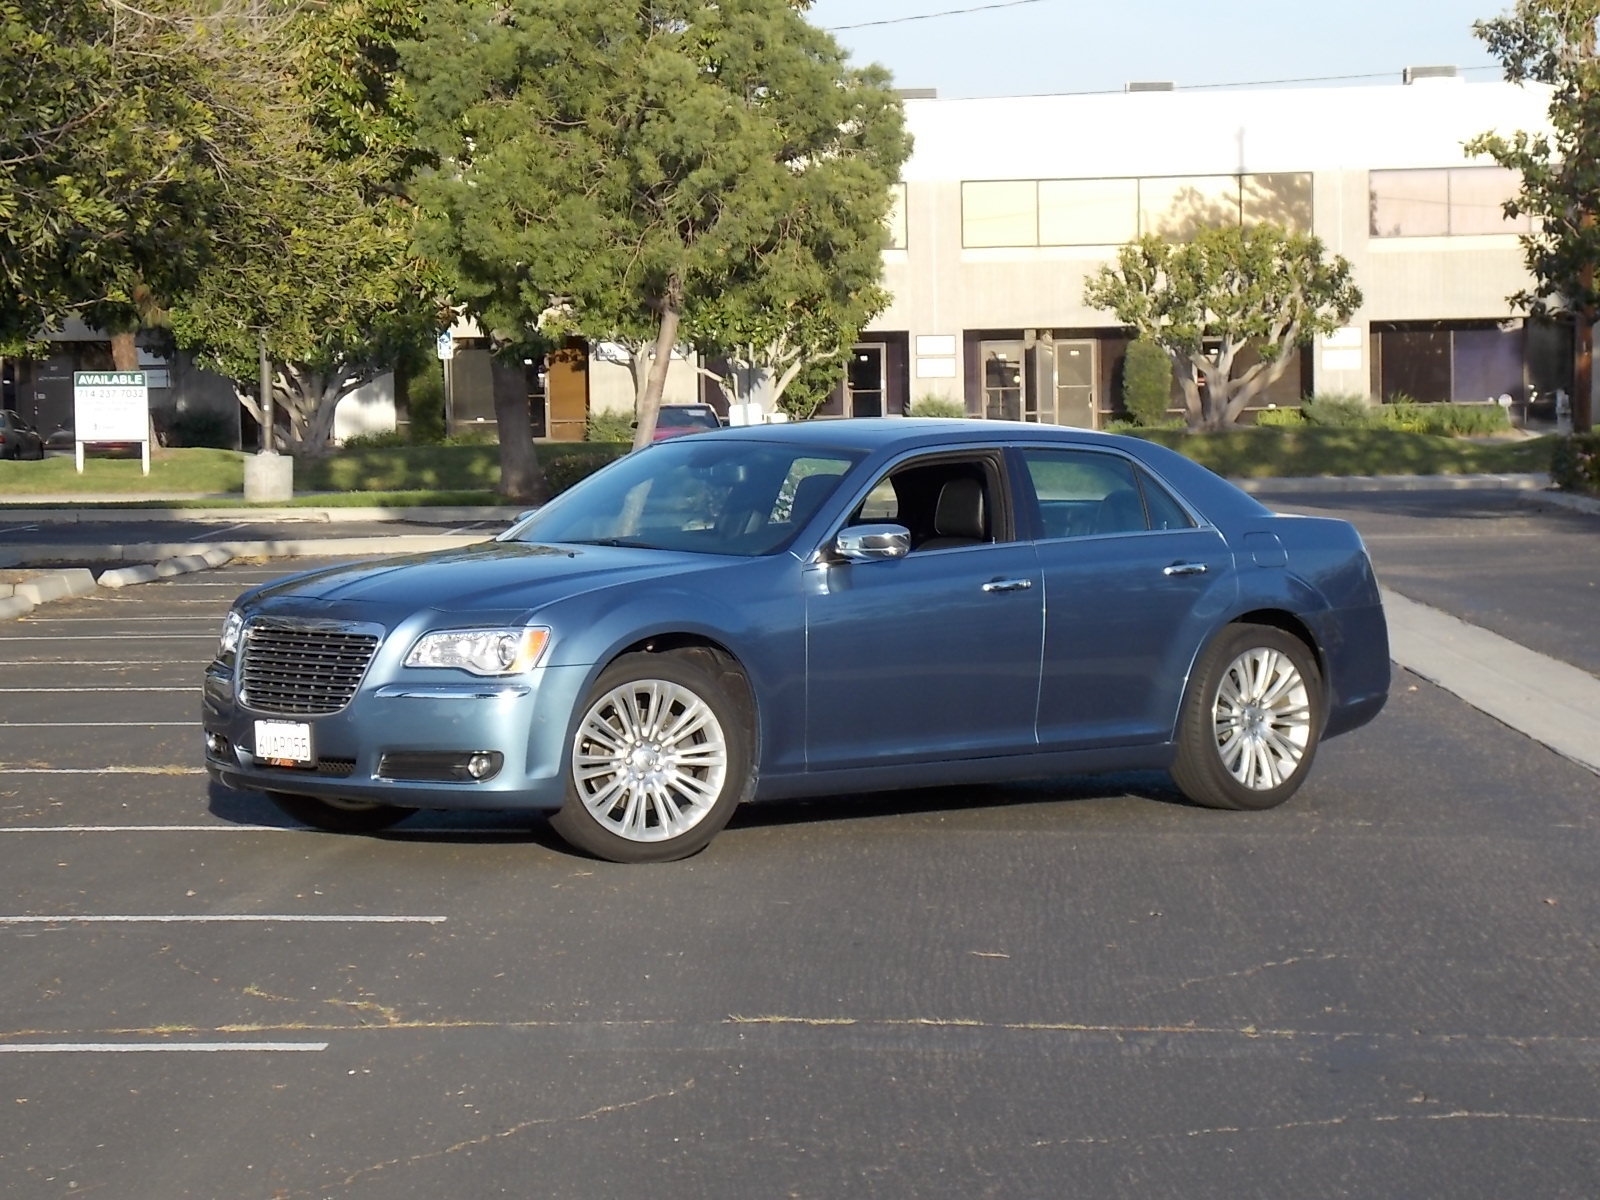 2011 chrysler 300 pictures cargurus. Black Bedroom Furniture Sets. Home Design Ideas